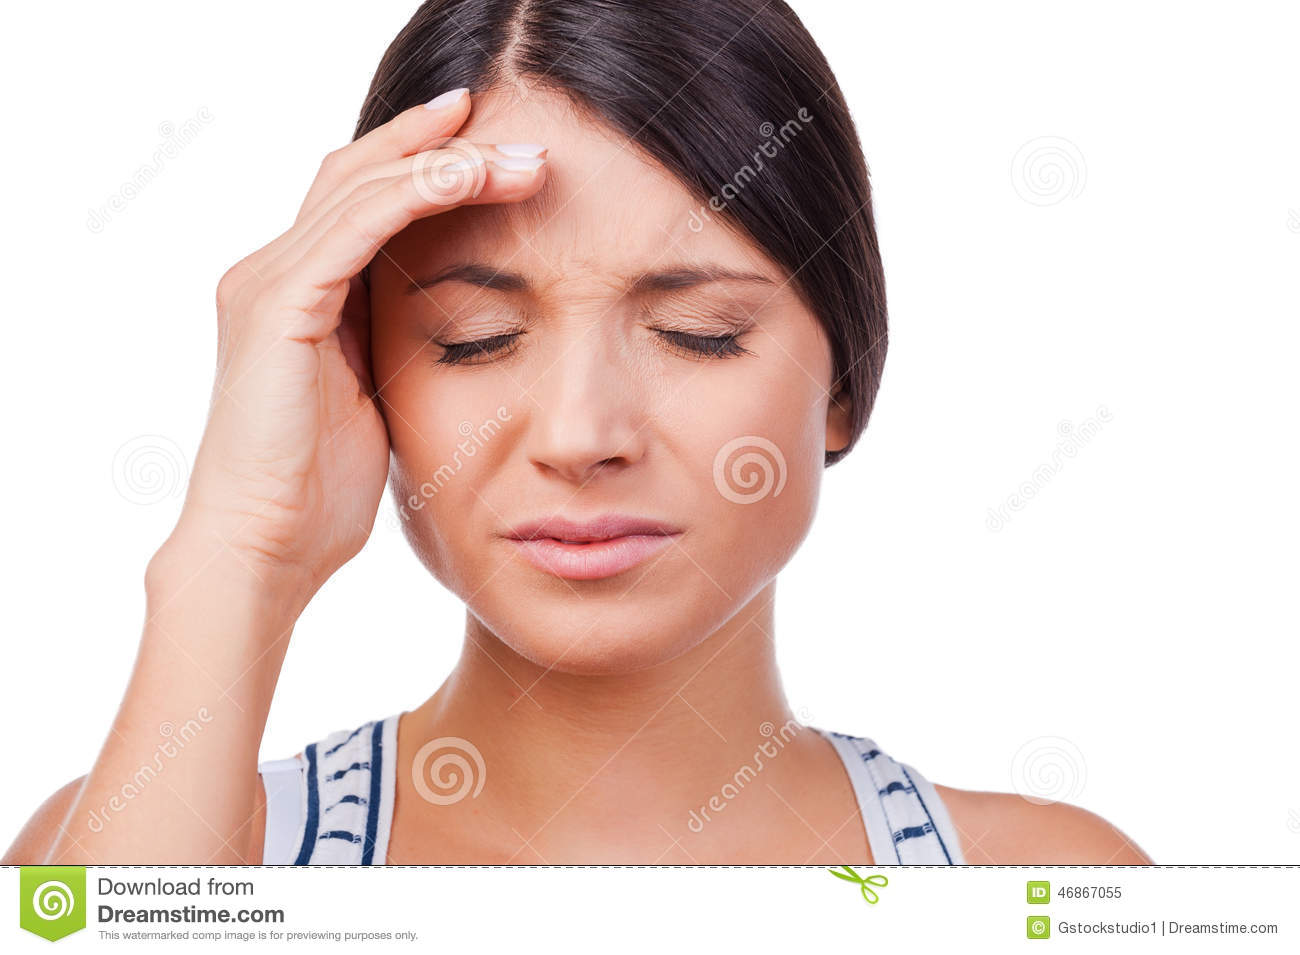 Suffering From Migraine. Stock Photo - Image: 46867055